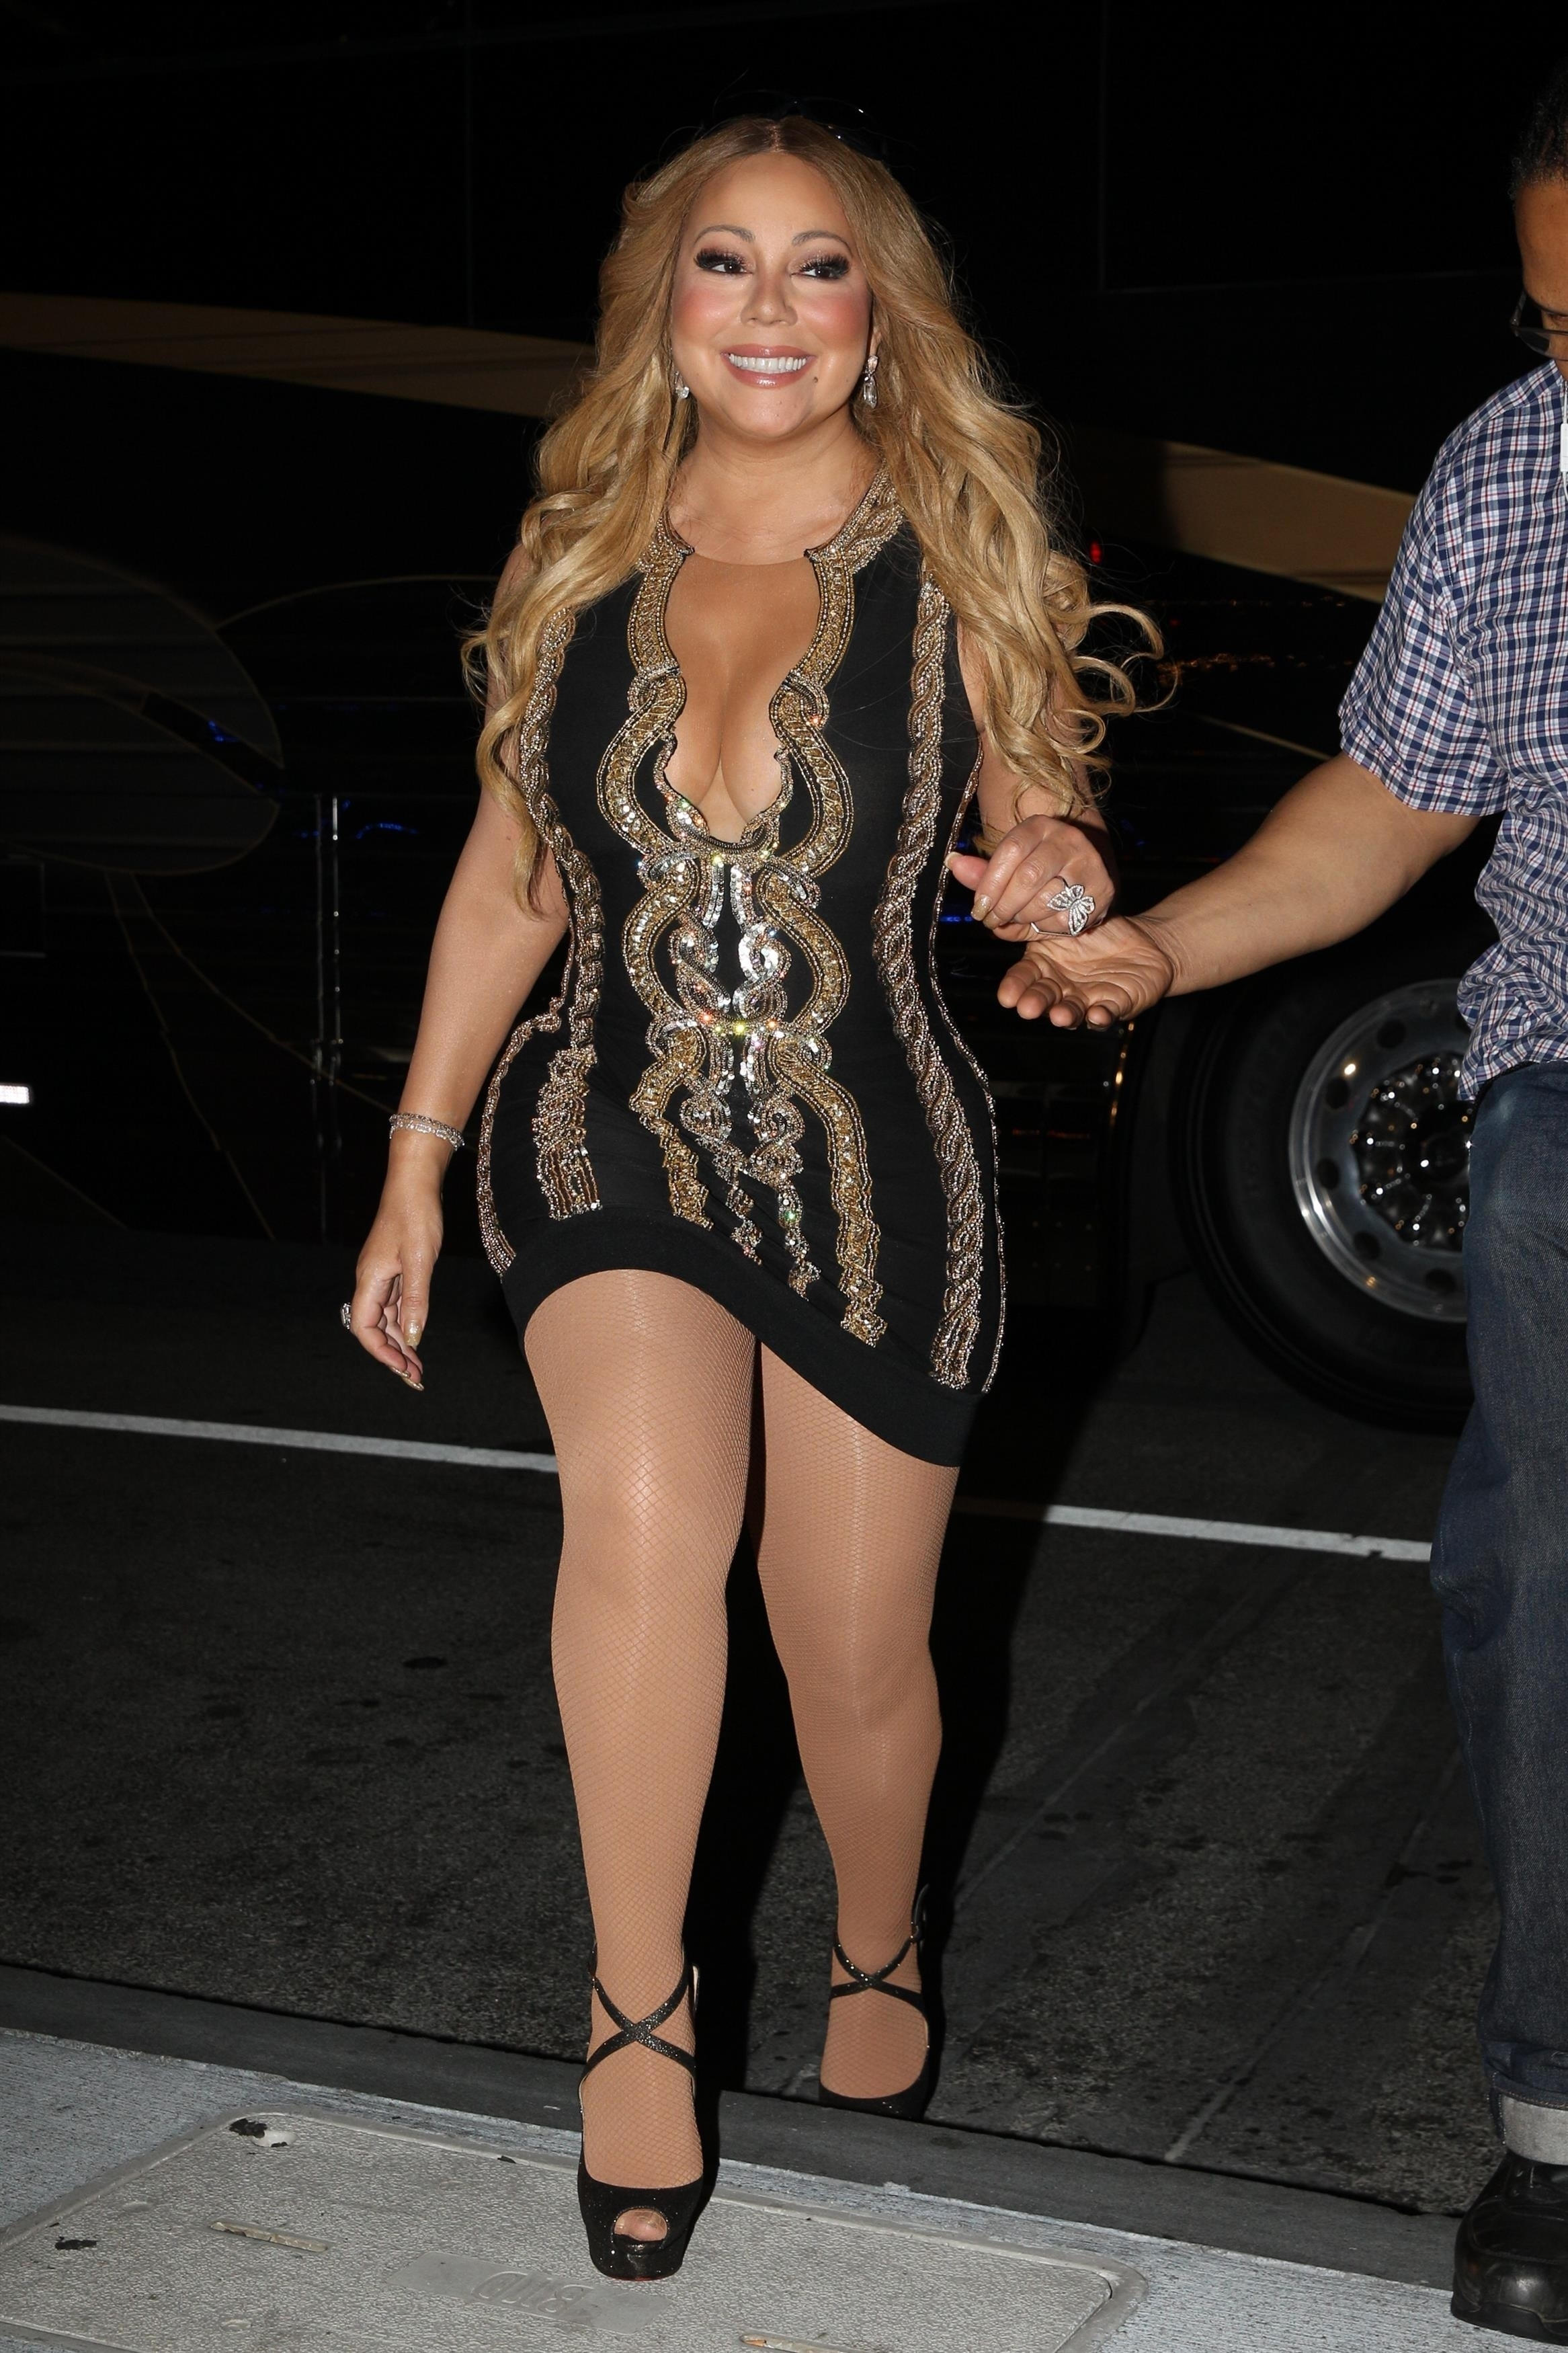 EXCLUSIVE Mariah Carey Looks Happy After Being Criticized by Body Shamers